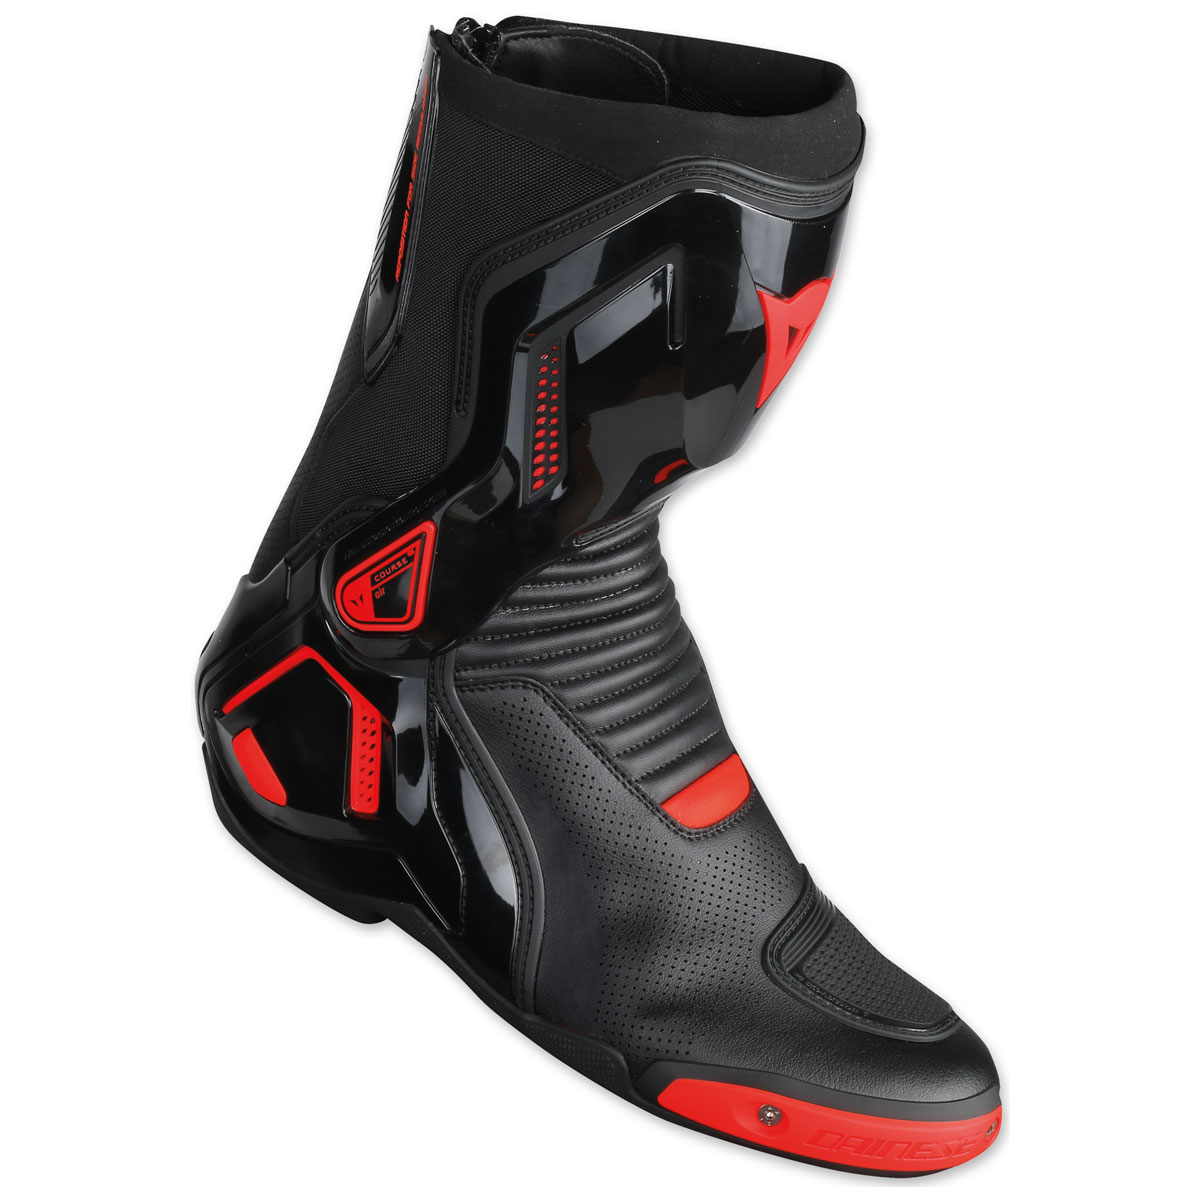 Dainese Course D1 Out Air Black/Fluo Red Boots